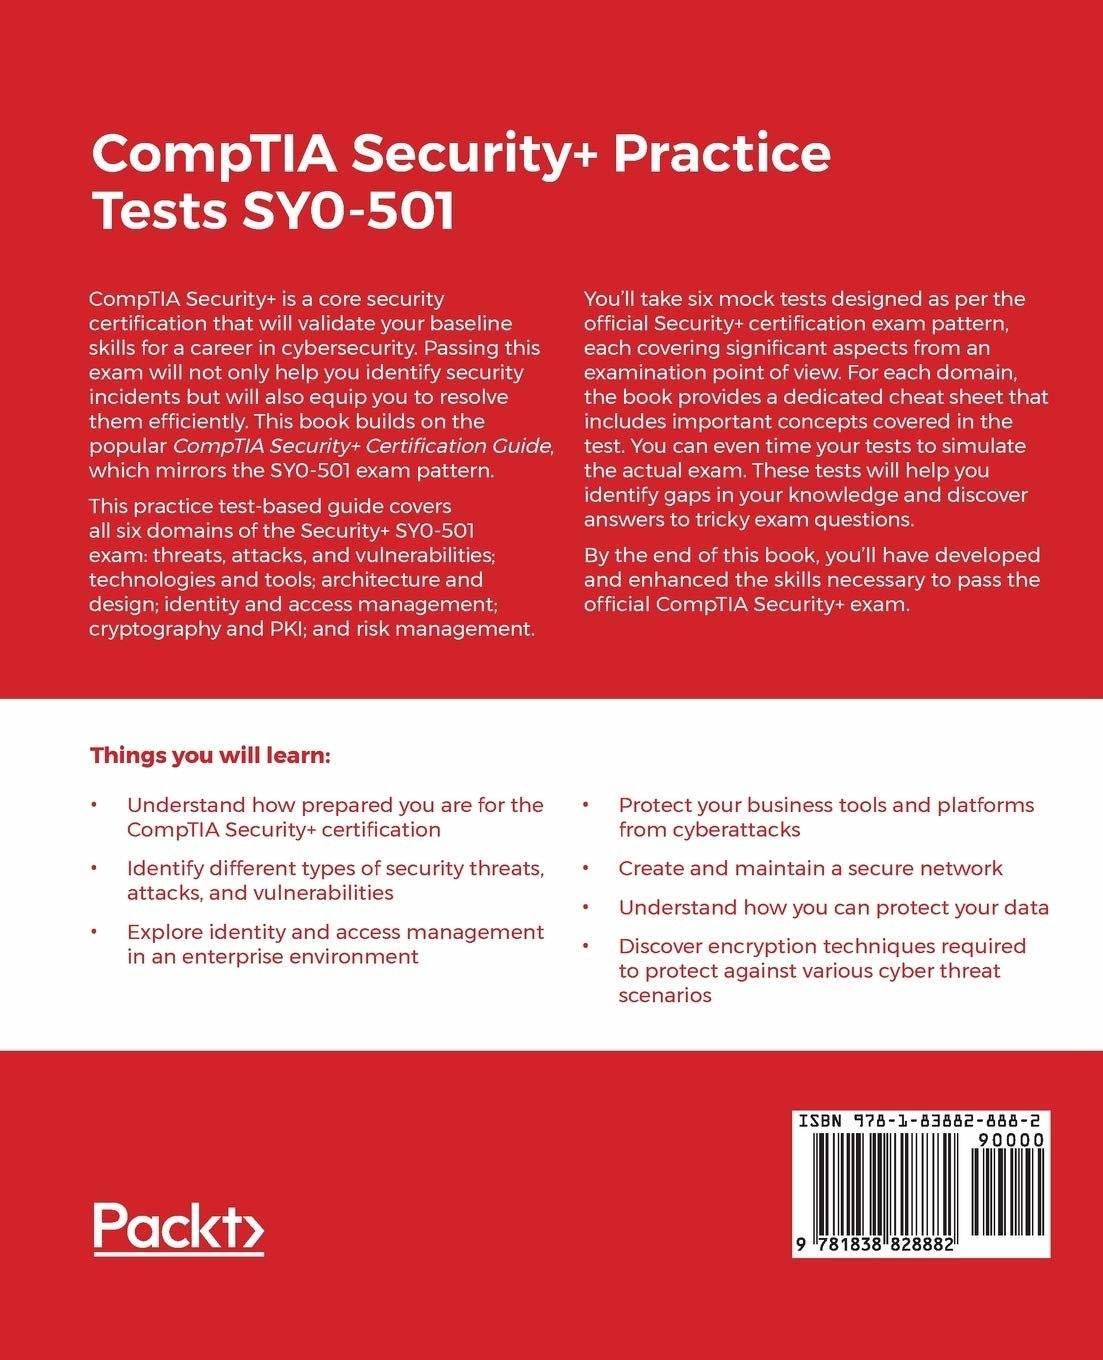 CompTIA Security+ Practice Tests SY0-501-preview-2